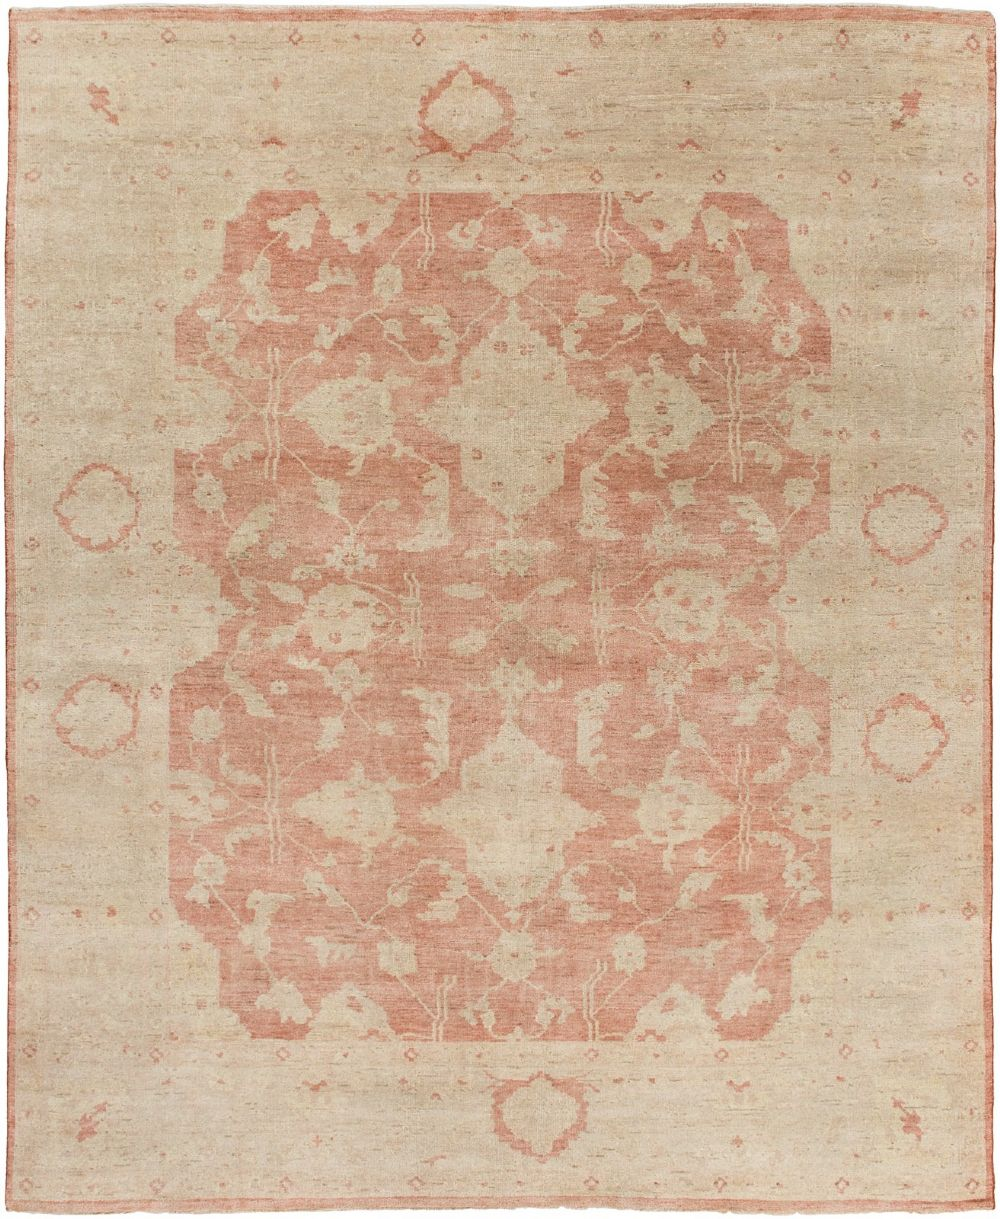 surya normandy country & floral area rug collection